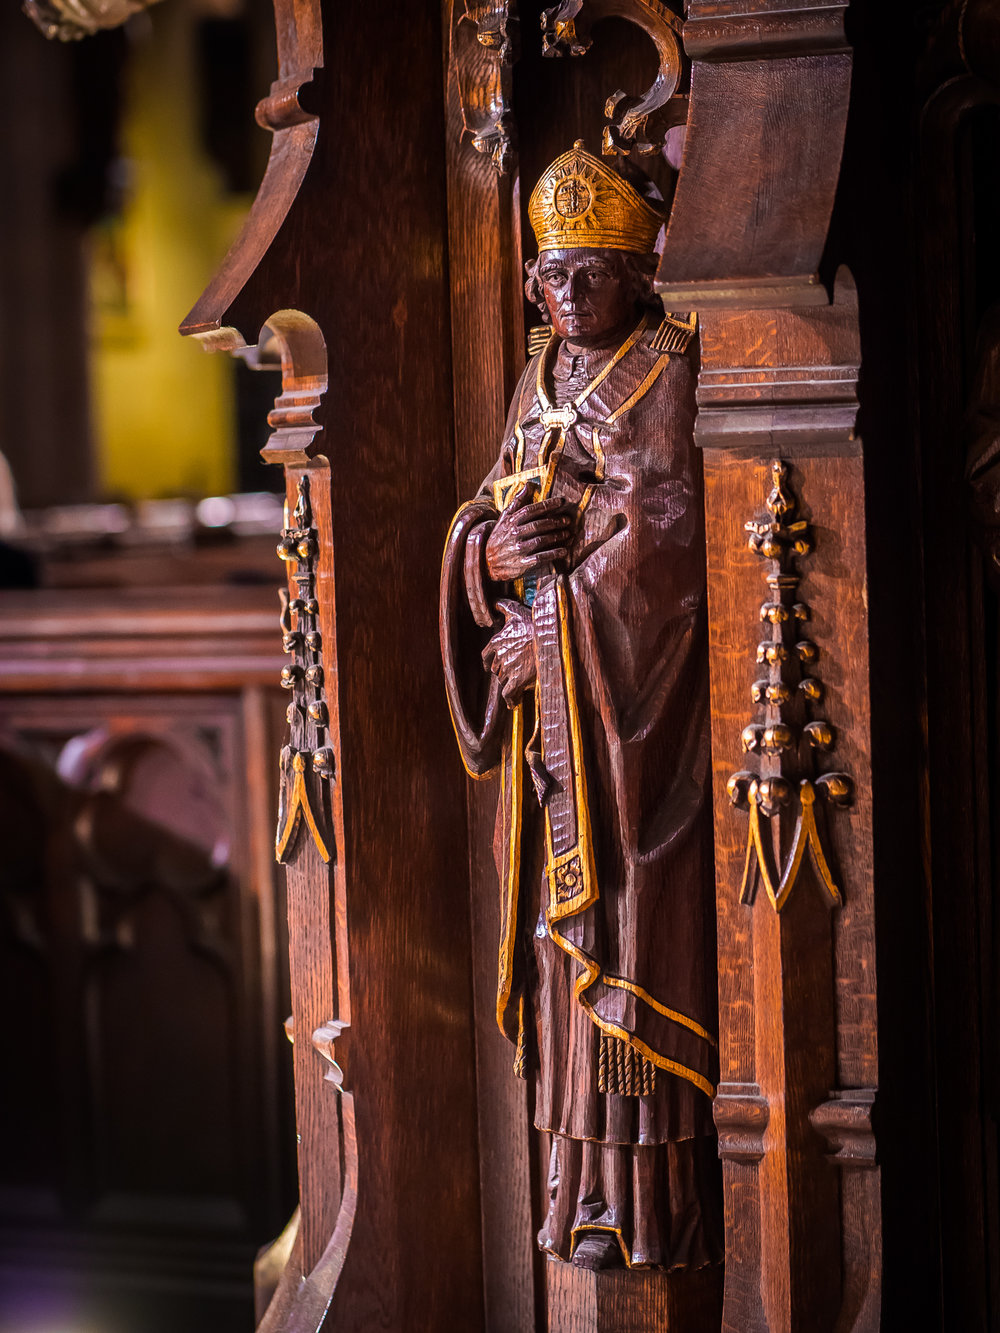 Bishop Samuel Seabury (1729-1796) on the pedestal of the pulpit.    Carved by Johannes Kirchmayer (1860-1930).   Photo by Ricardo Gomez